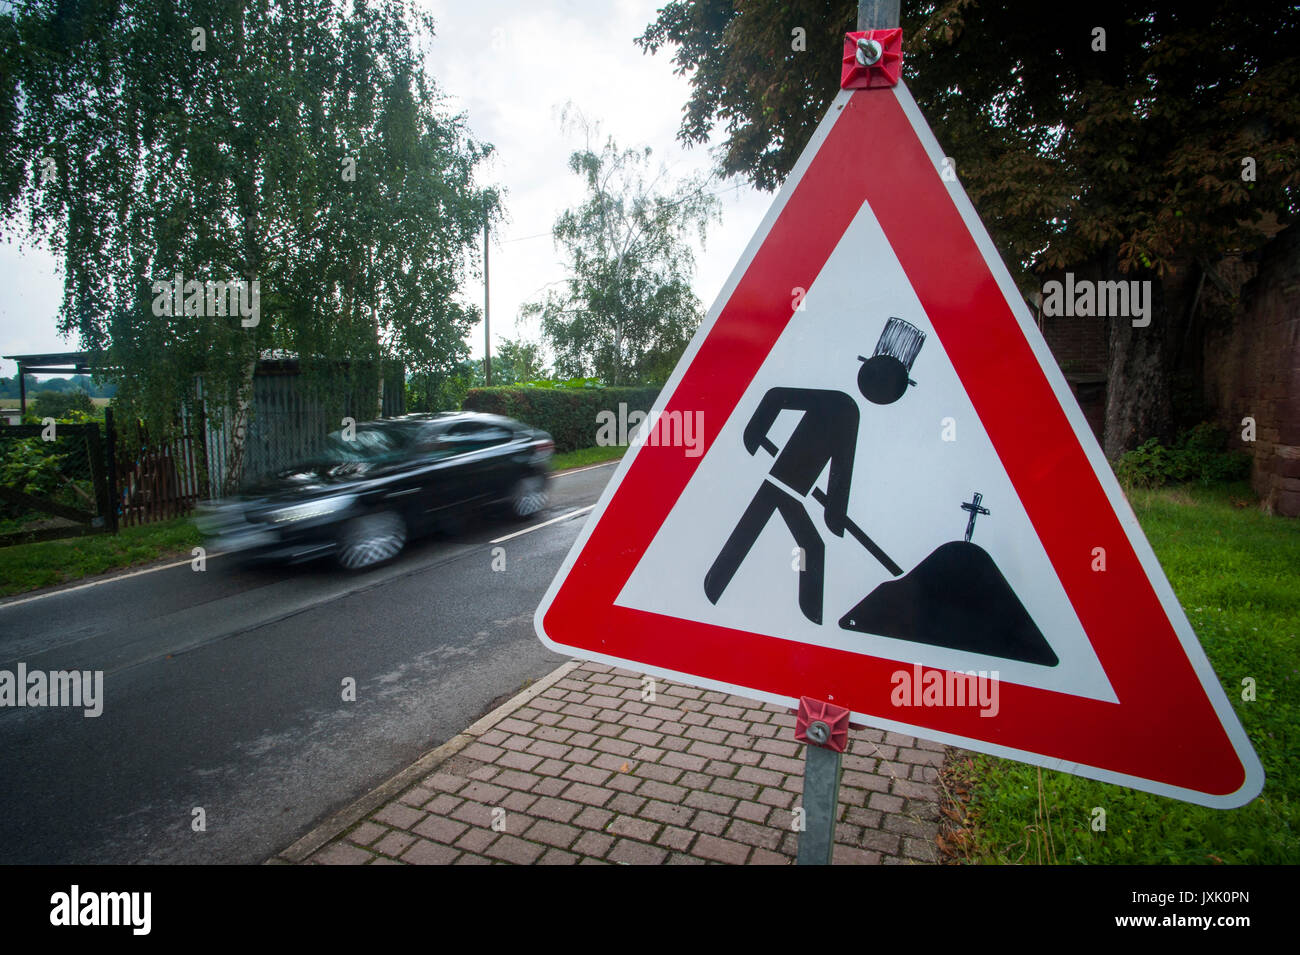 Highway Signs For Sale >> Funny Road Signs Stock Photos & Funny Road Signs Stock ...